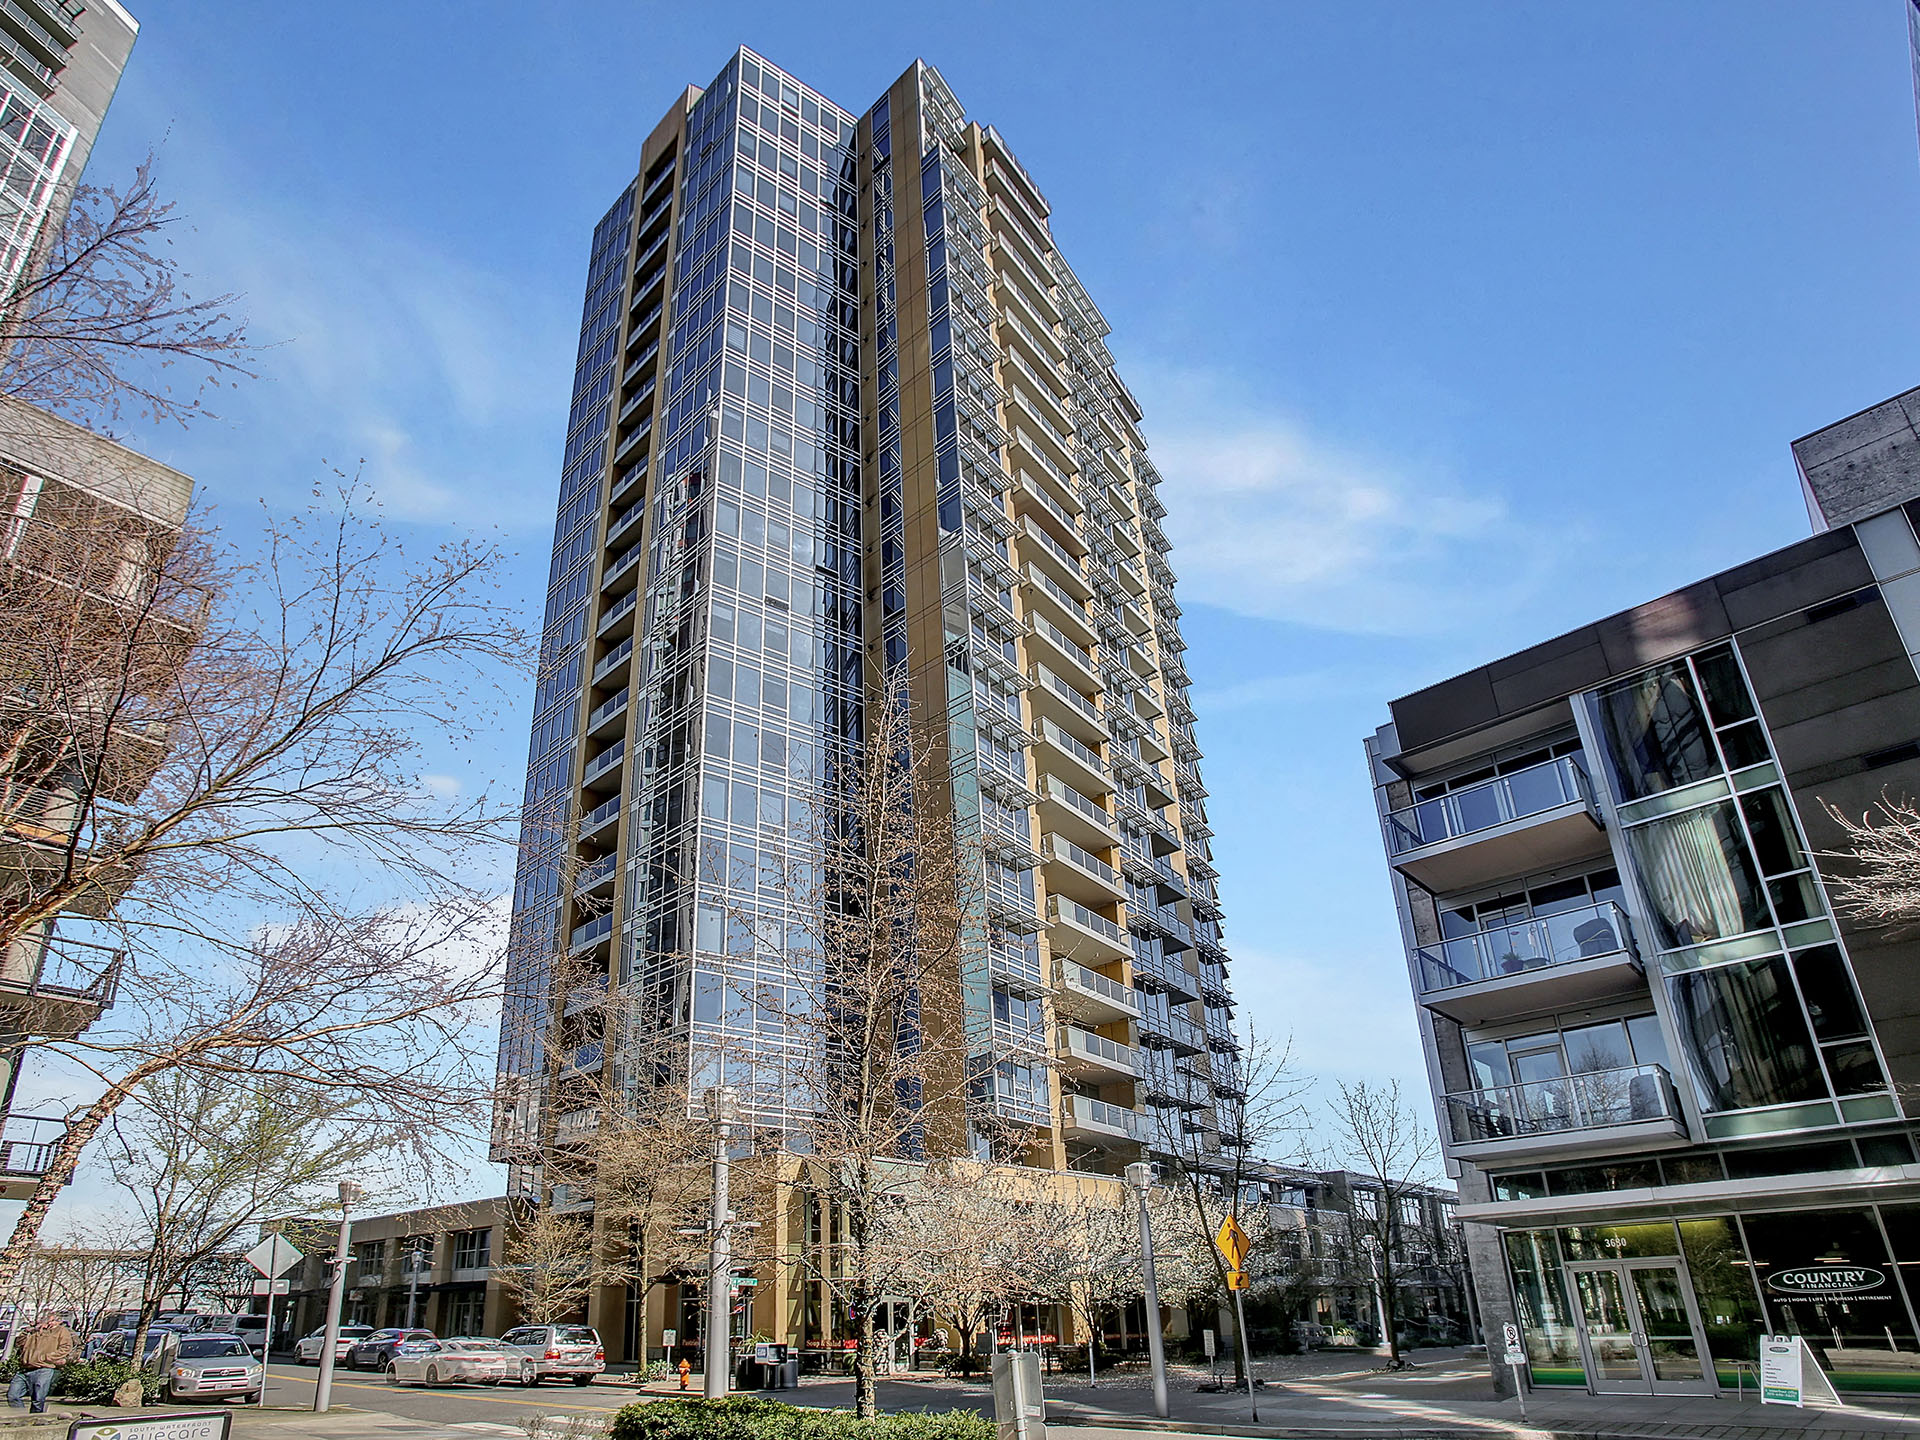 3570 SW River Pkwy - Portland - The Meriwether - 005.jpg